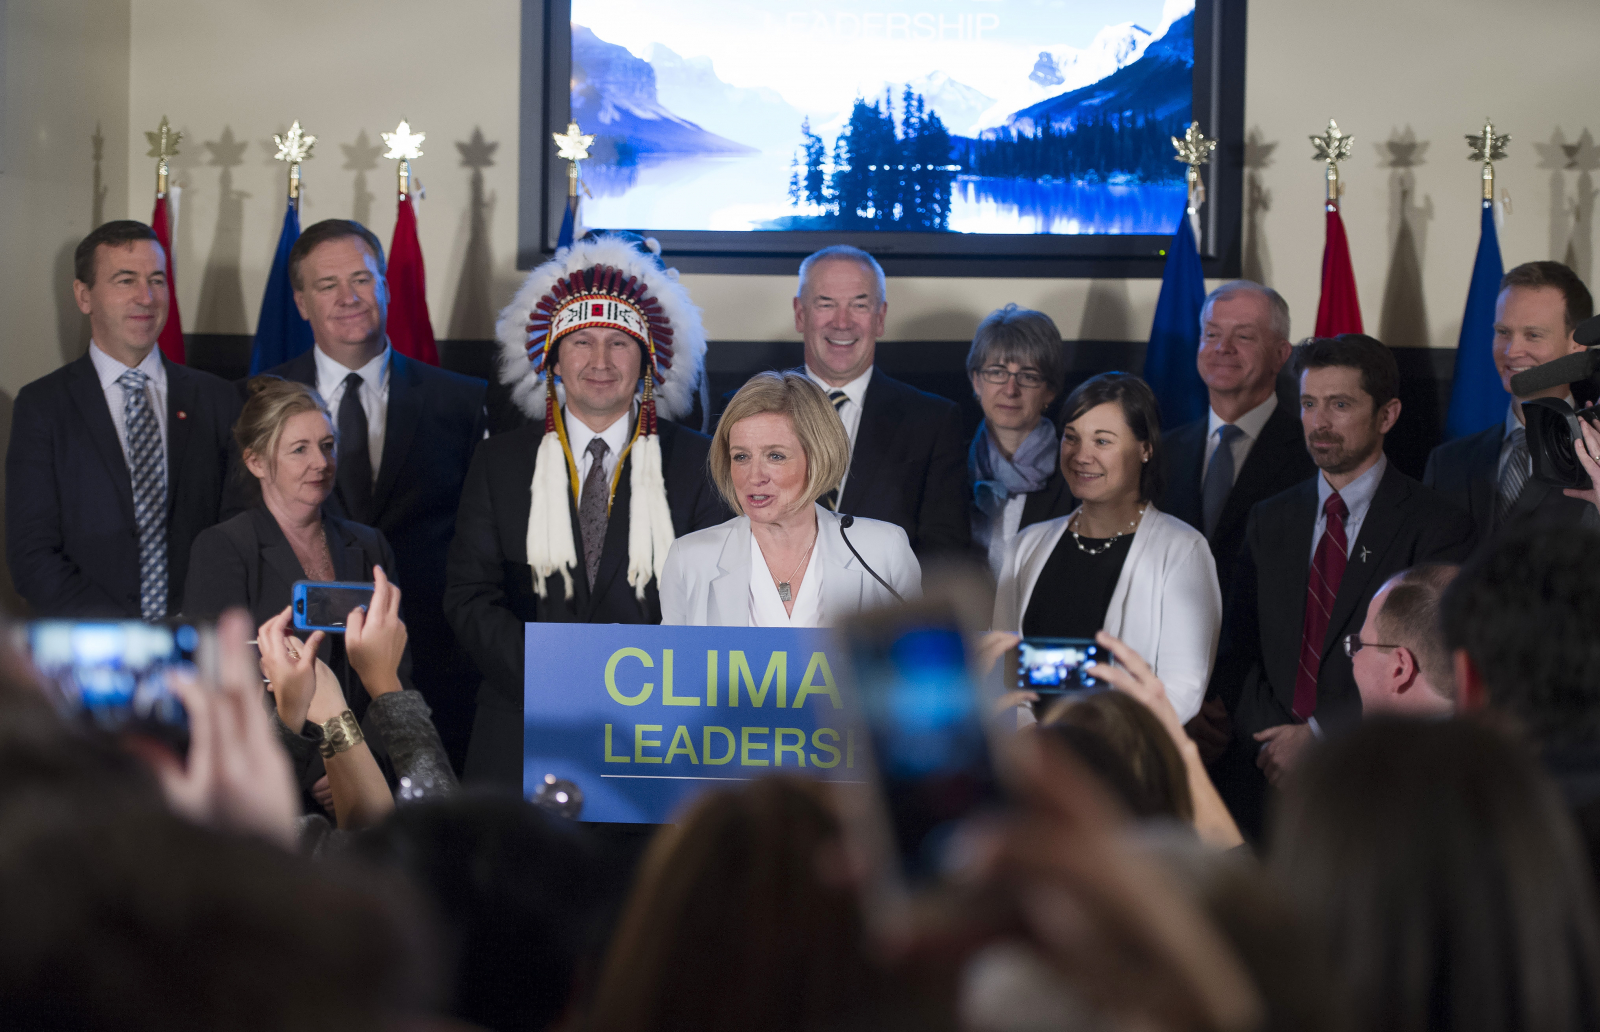 Alberta Premier Rachel Notley was flanked by Environment Minister Shannon Phillips (right) and oilsands industry leaders when she announced the province's climate leadership plan on Nov. 22, 2015 in Edmonton. Photo from the Government of Alberta